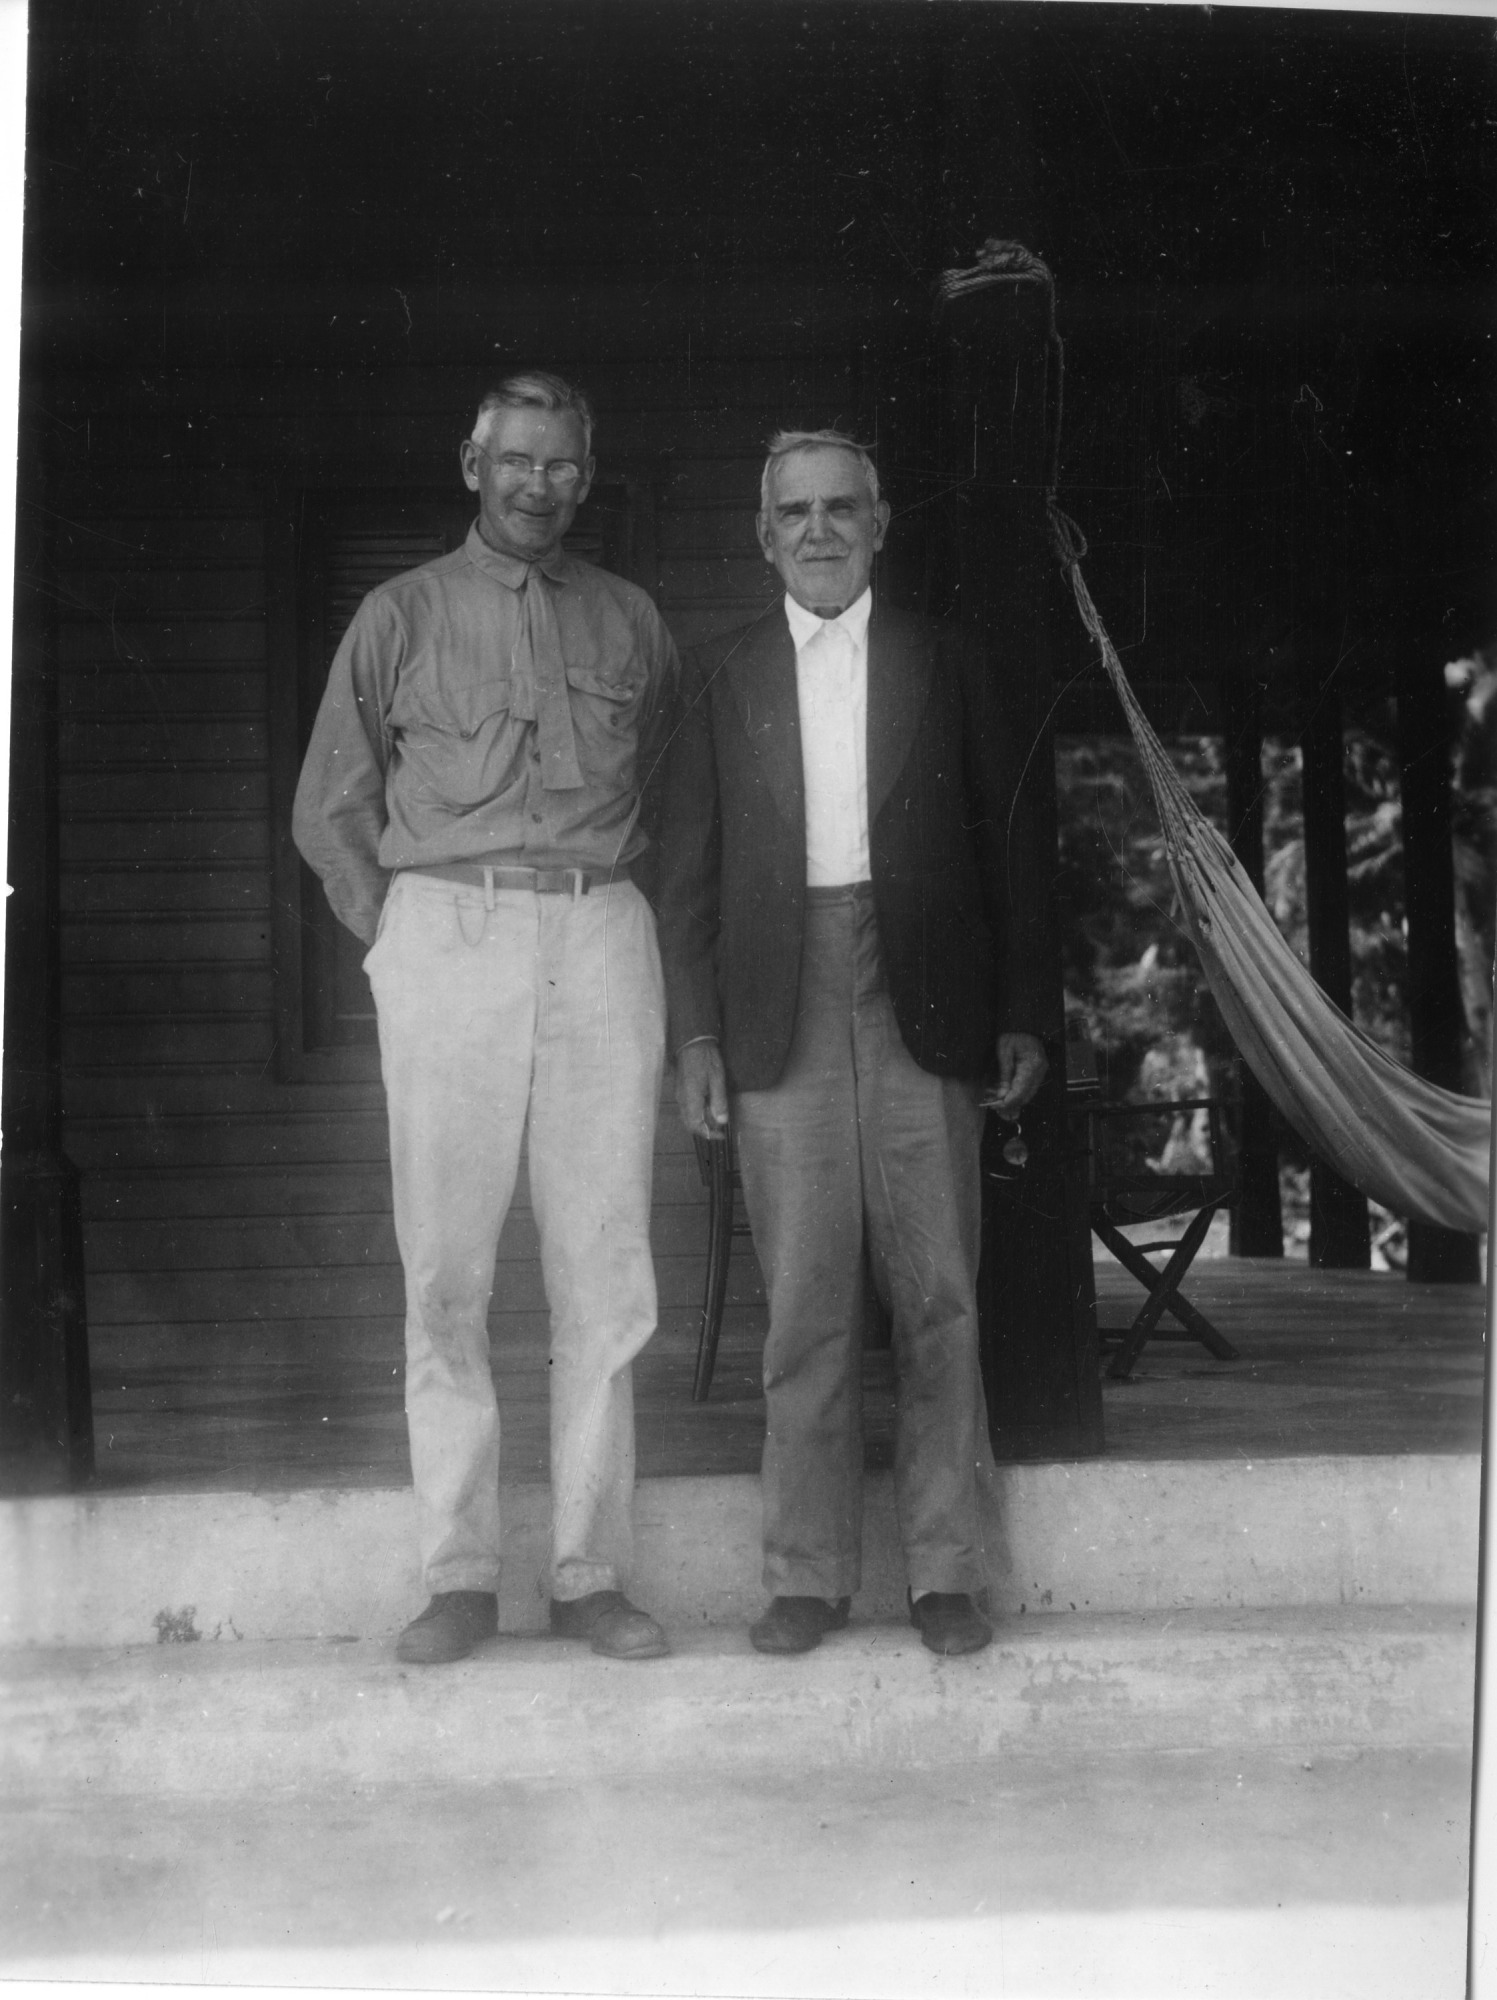 Alexander Wetmore and Henri Pittier in Venezuela